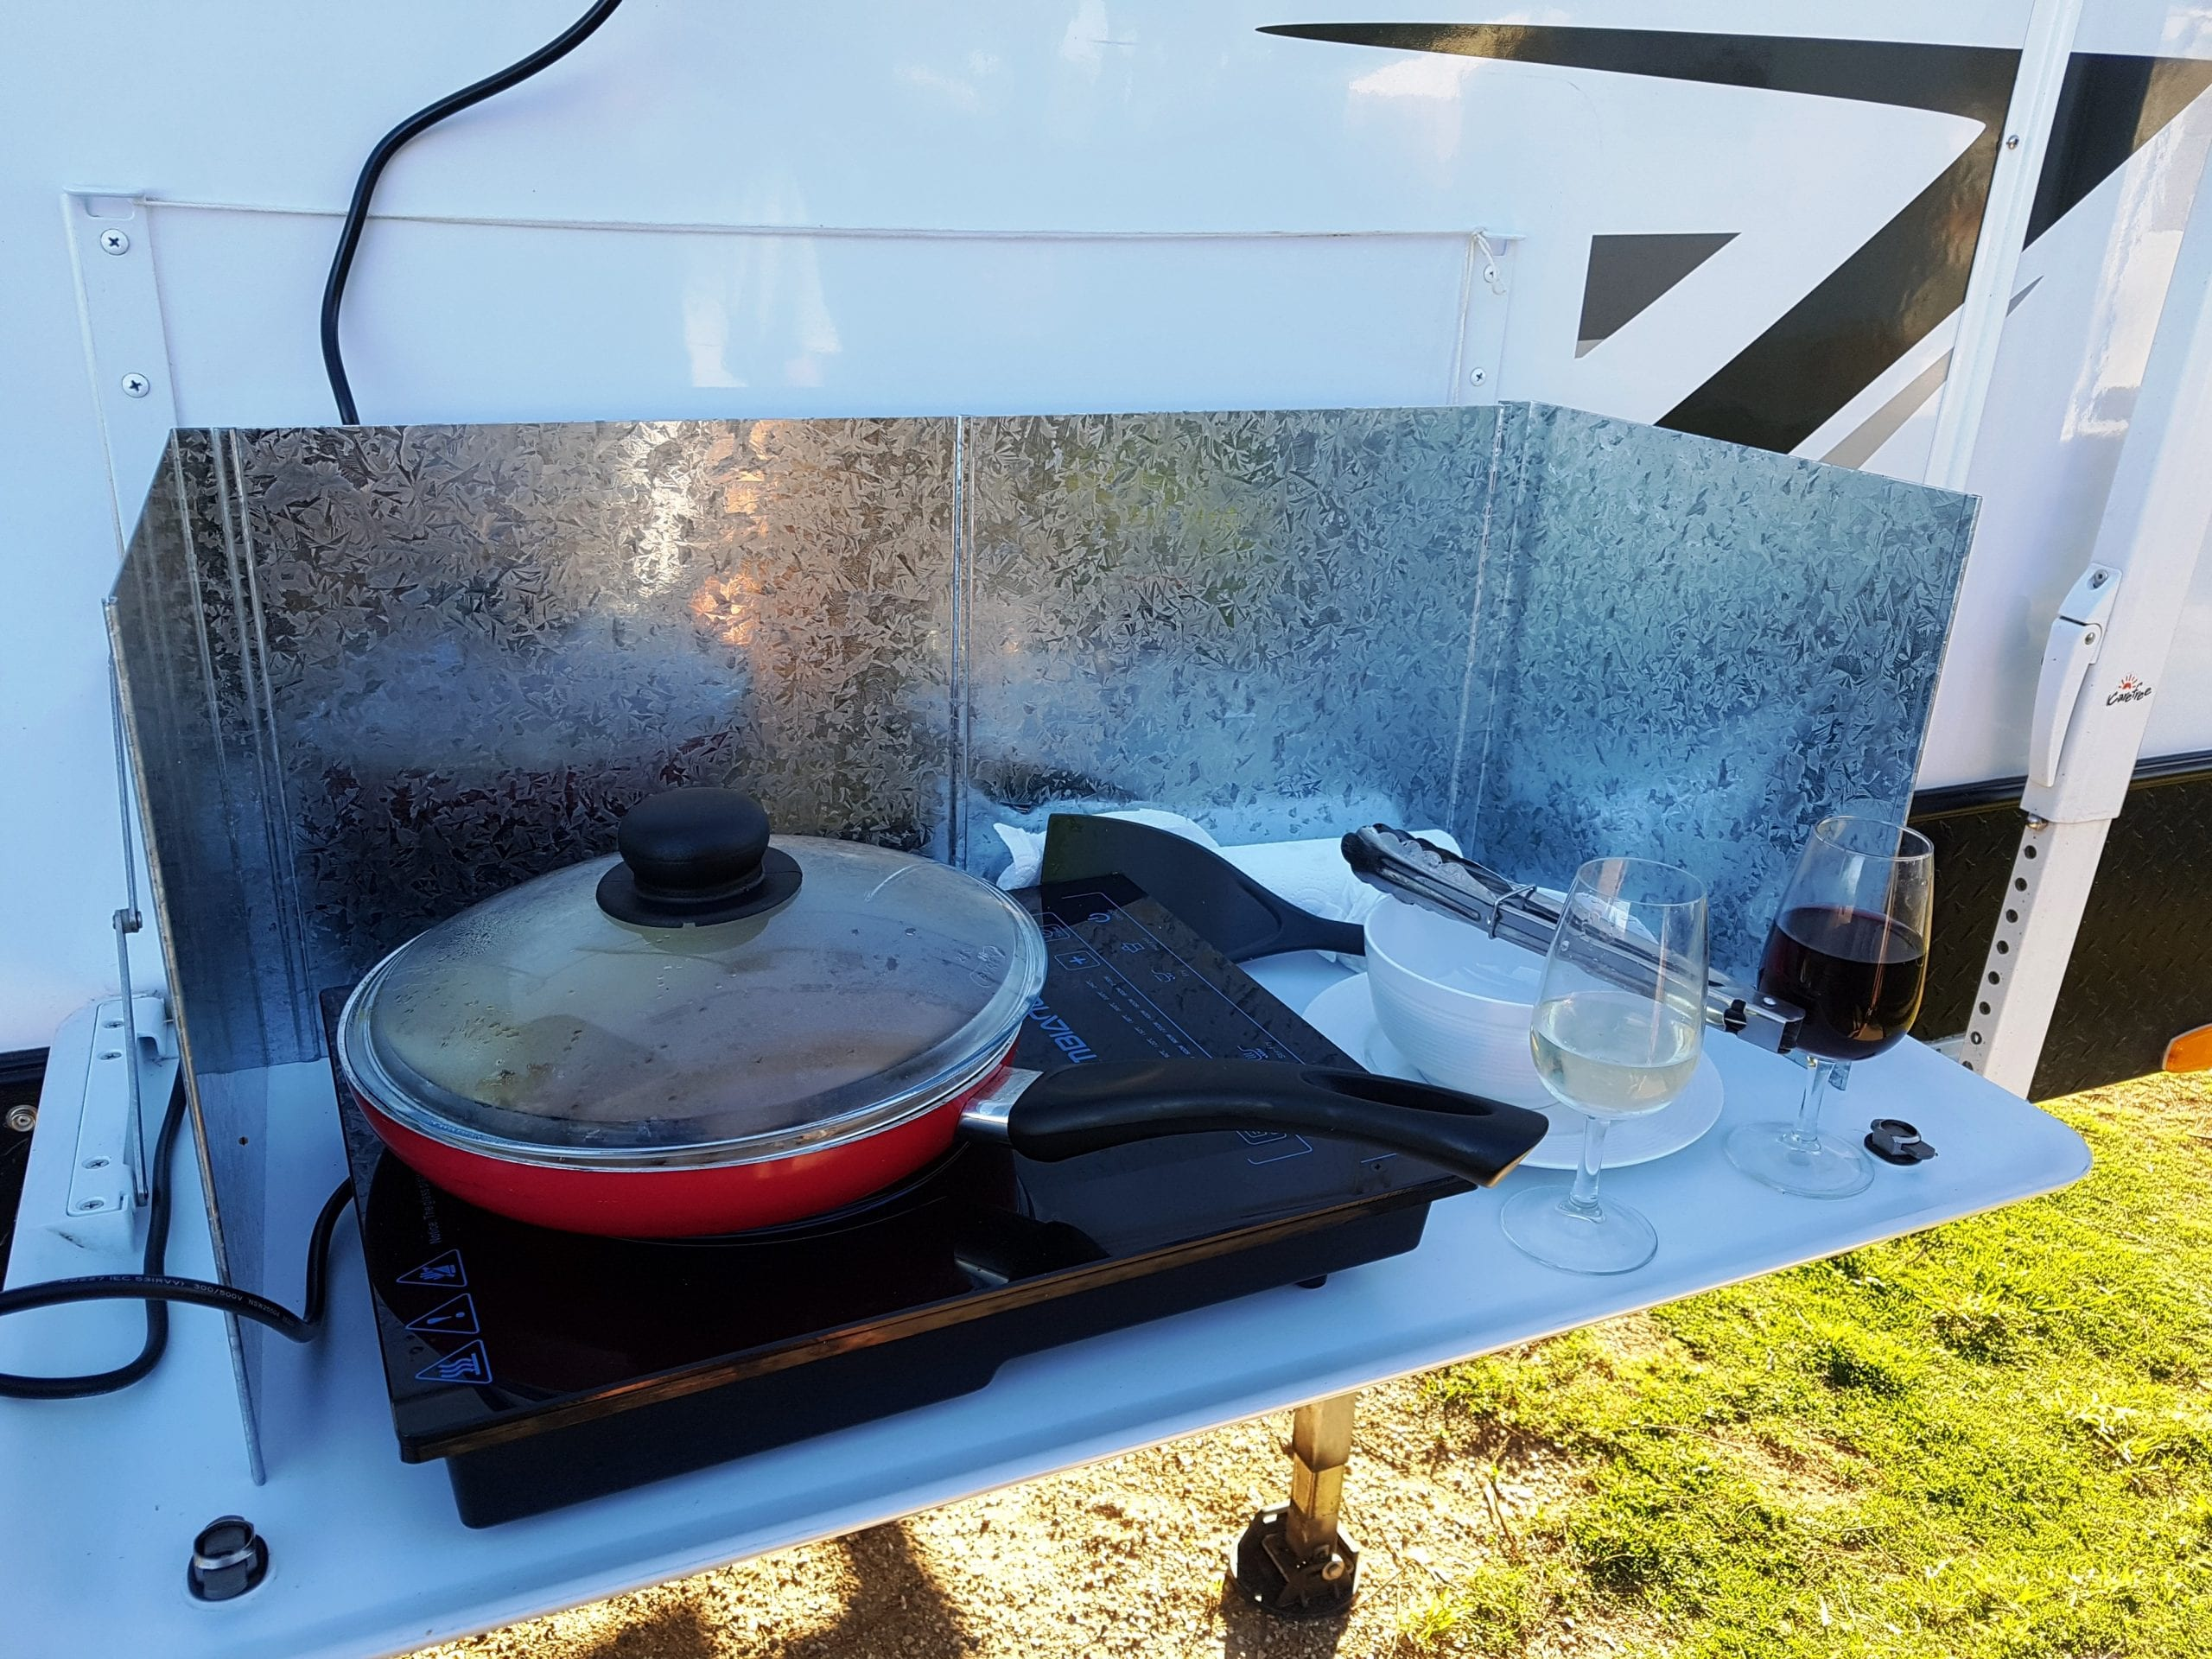 Cake Recipes In Induction Stove: Caravan Cooking With Aussie Caravanning Lifestyle